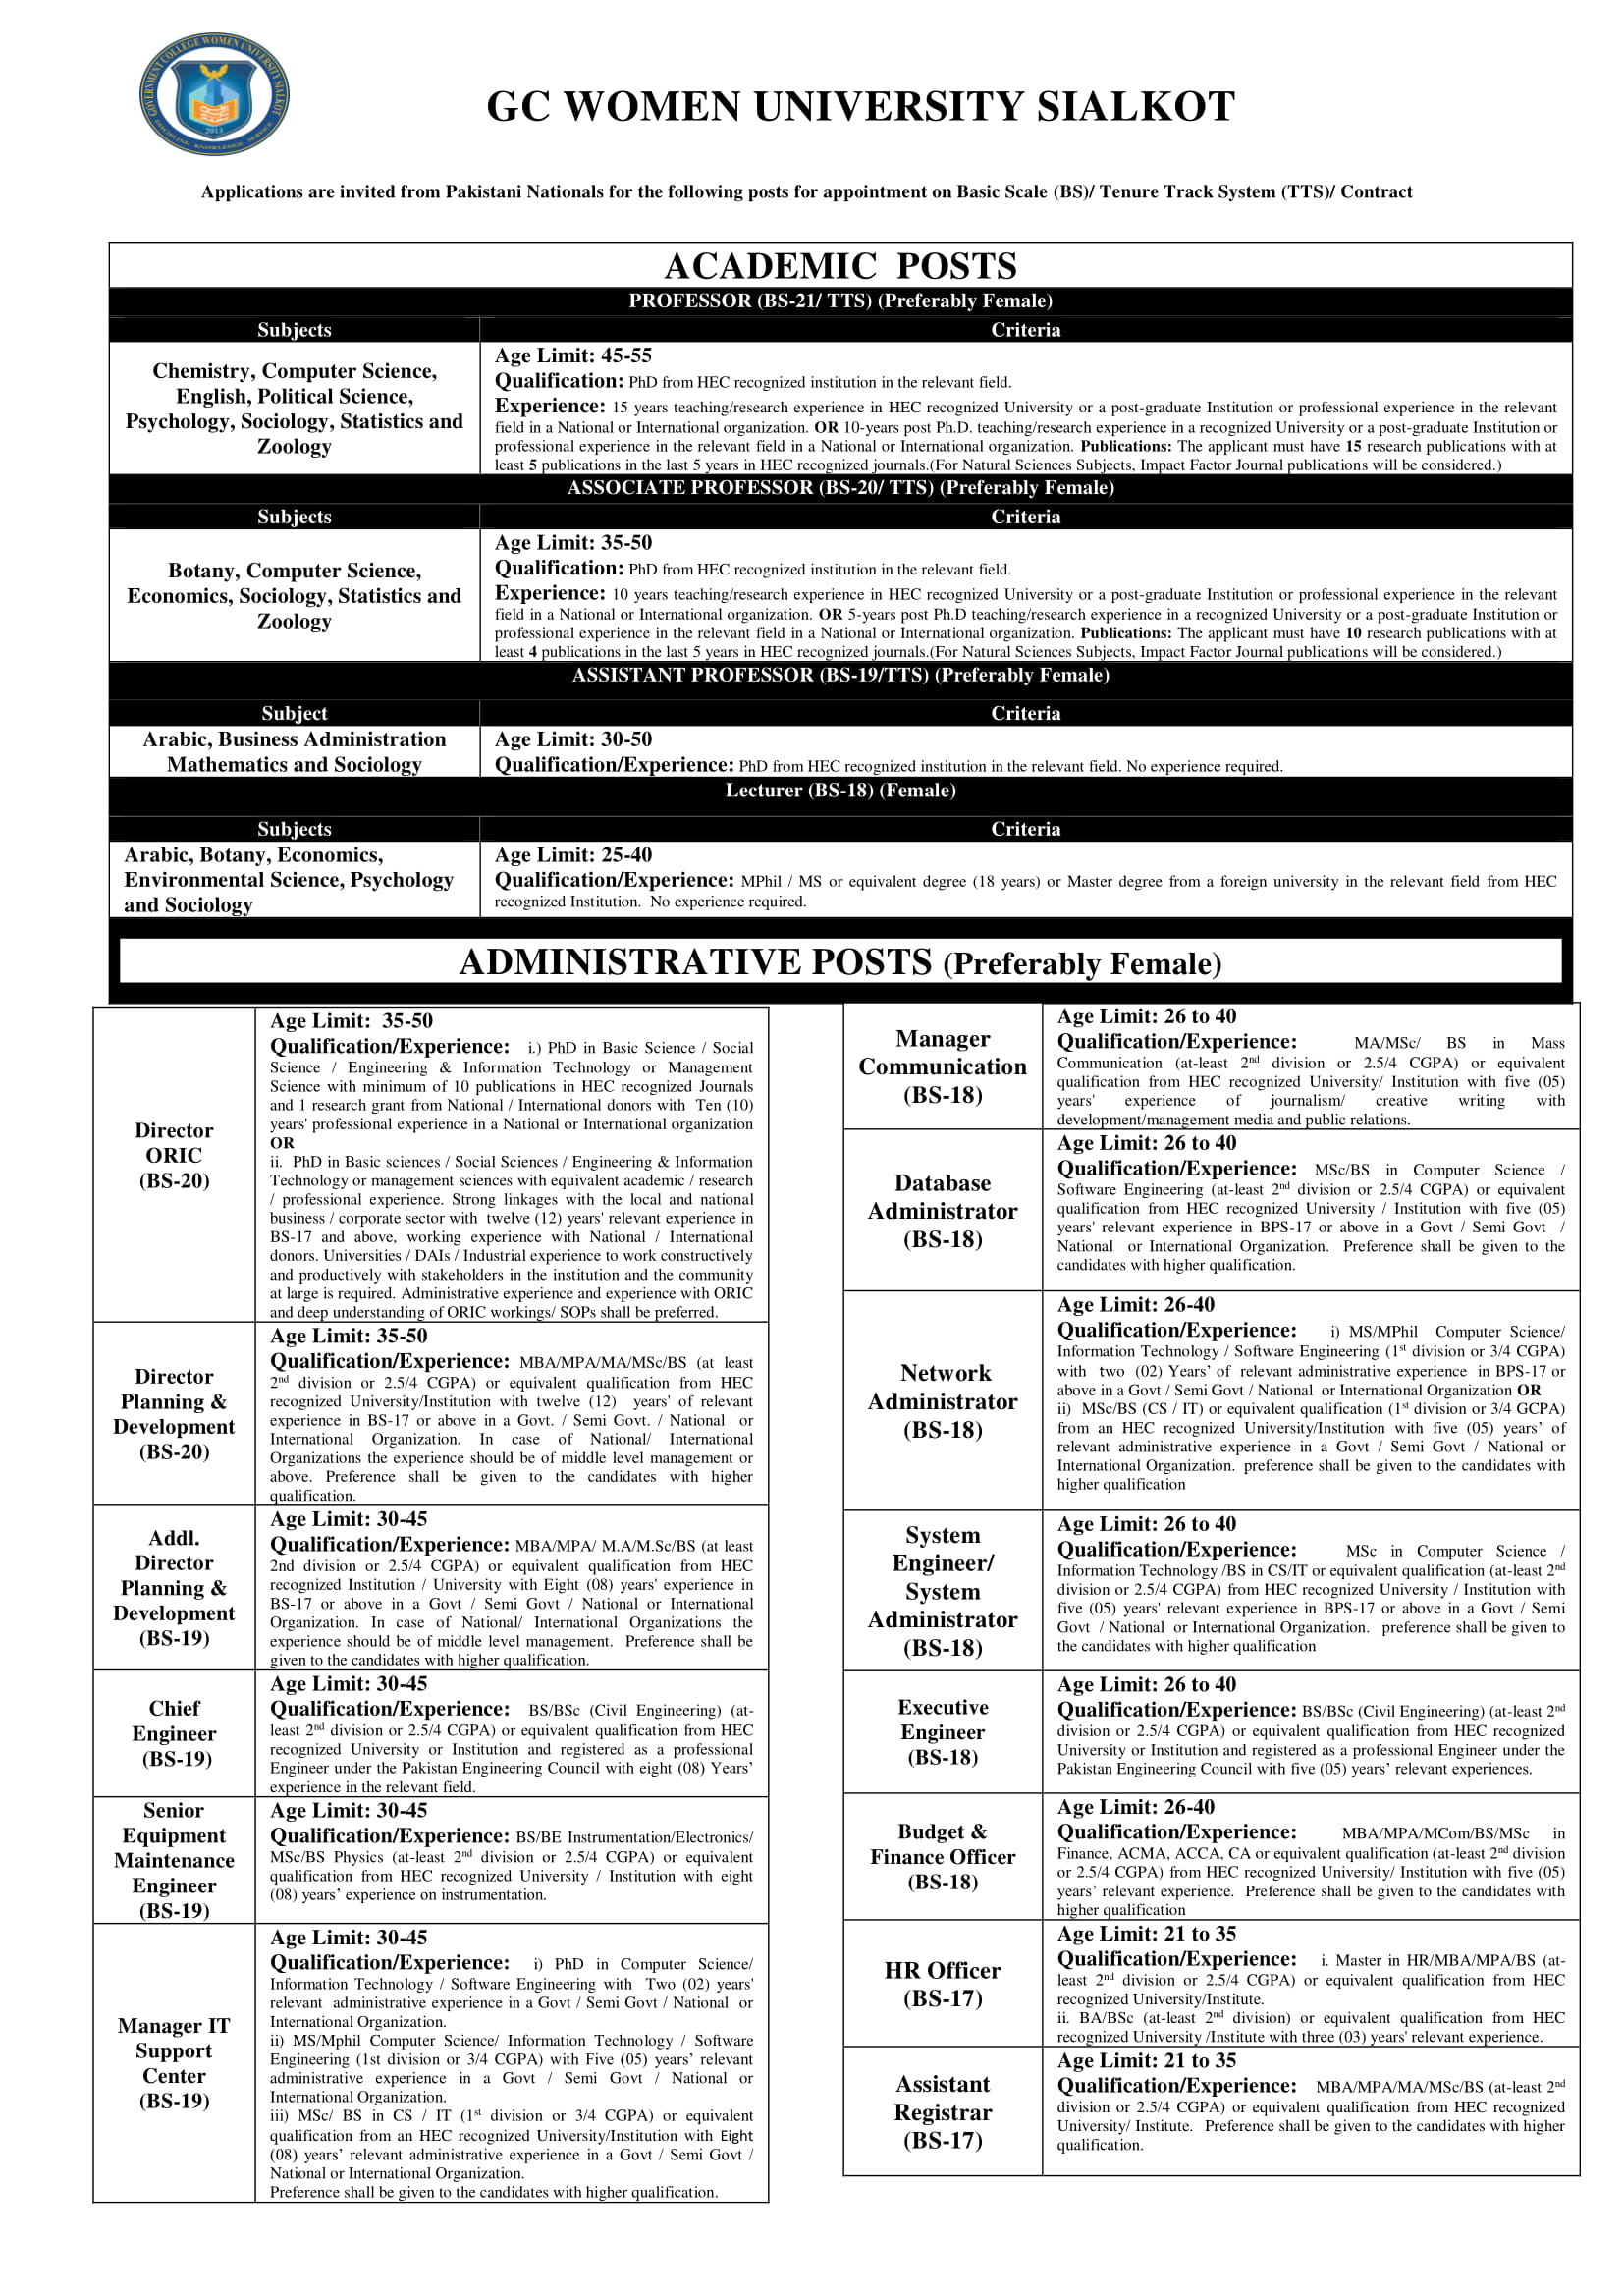 GC Women University Sialkot Jobs 2019